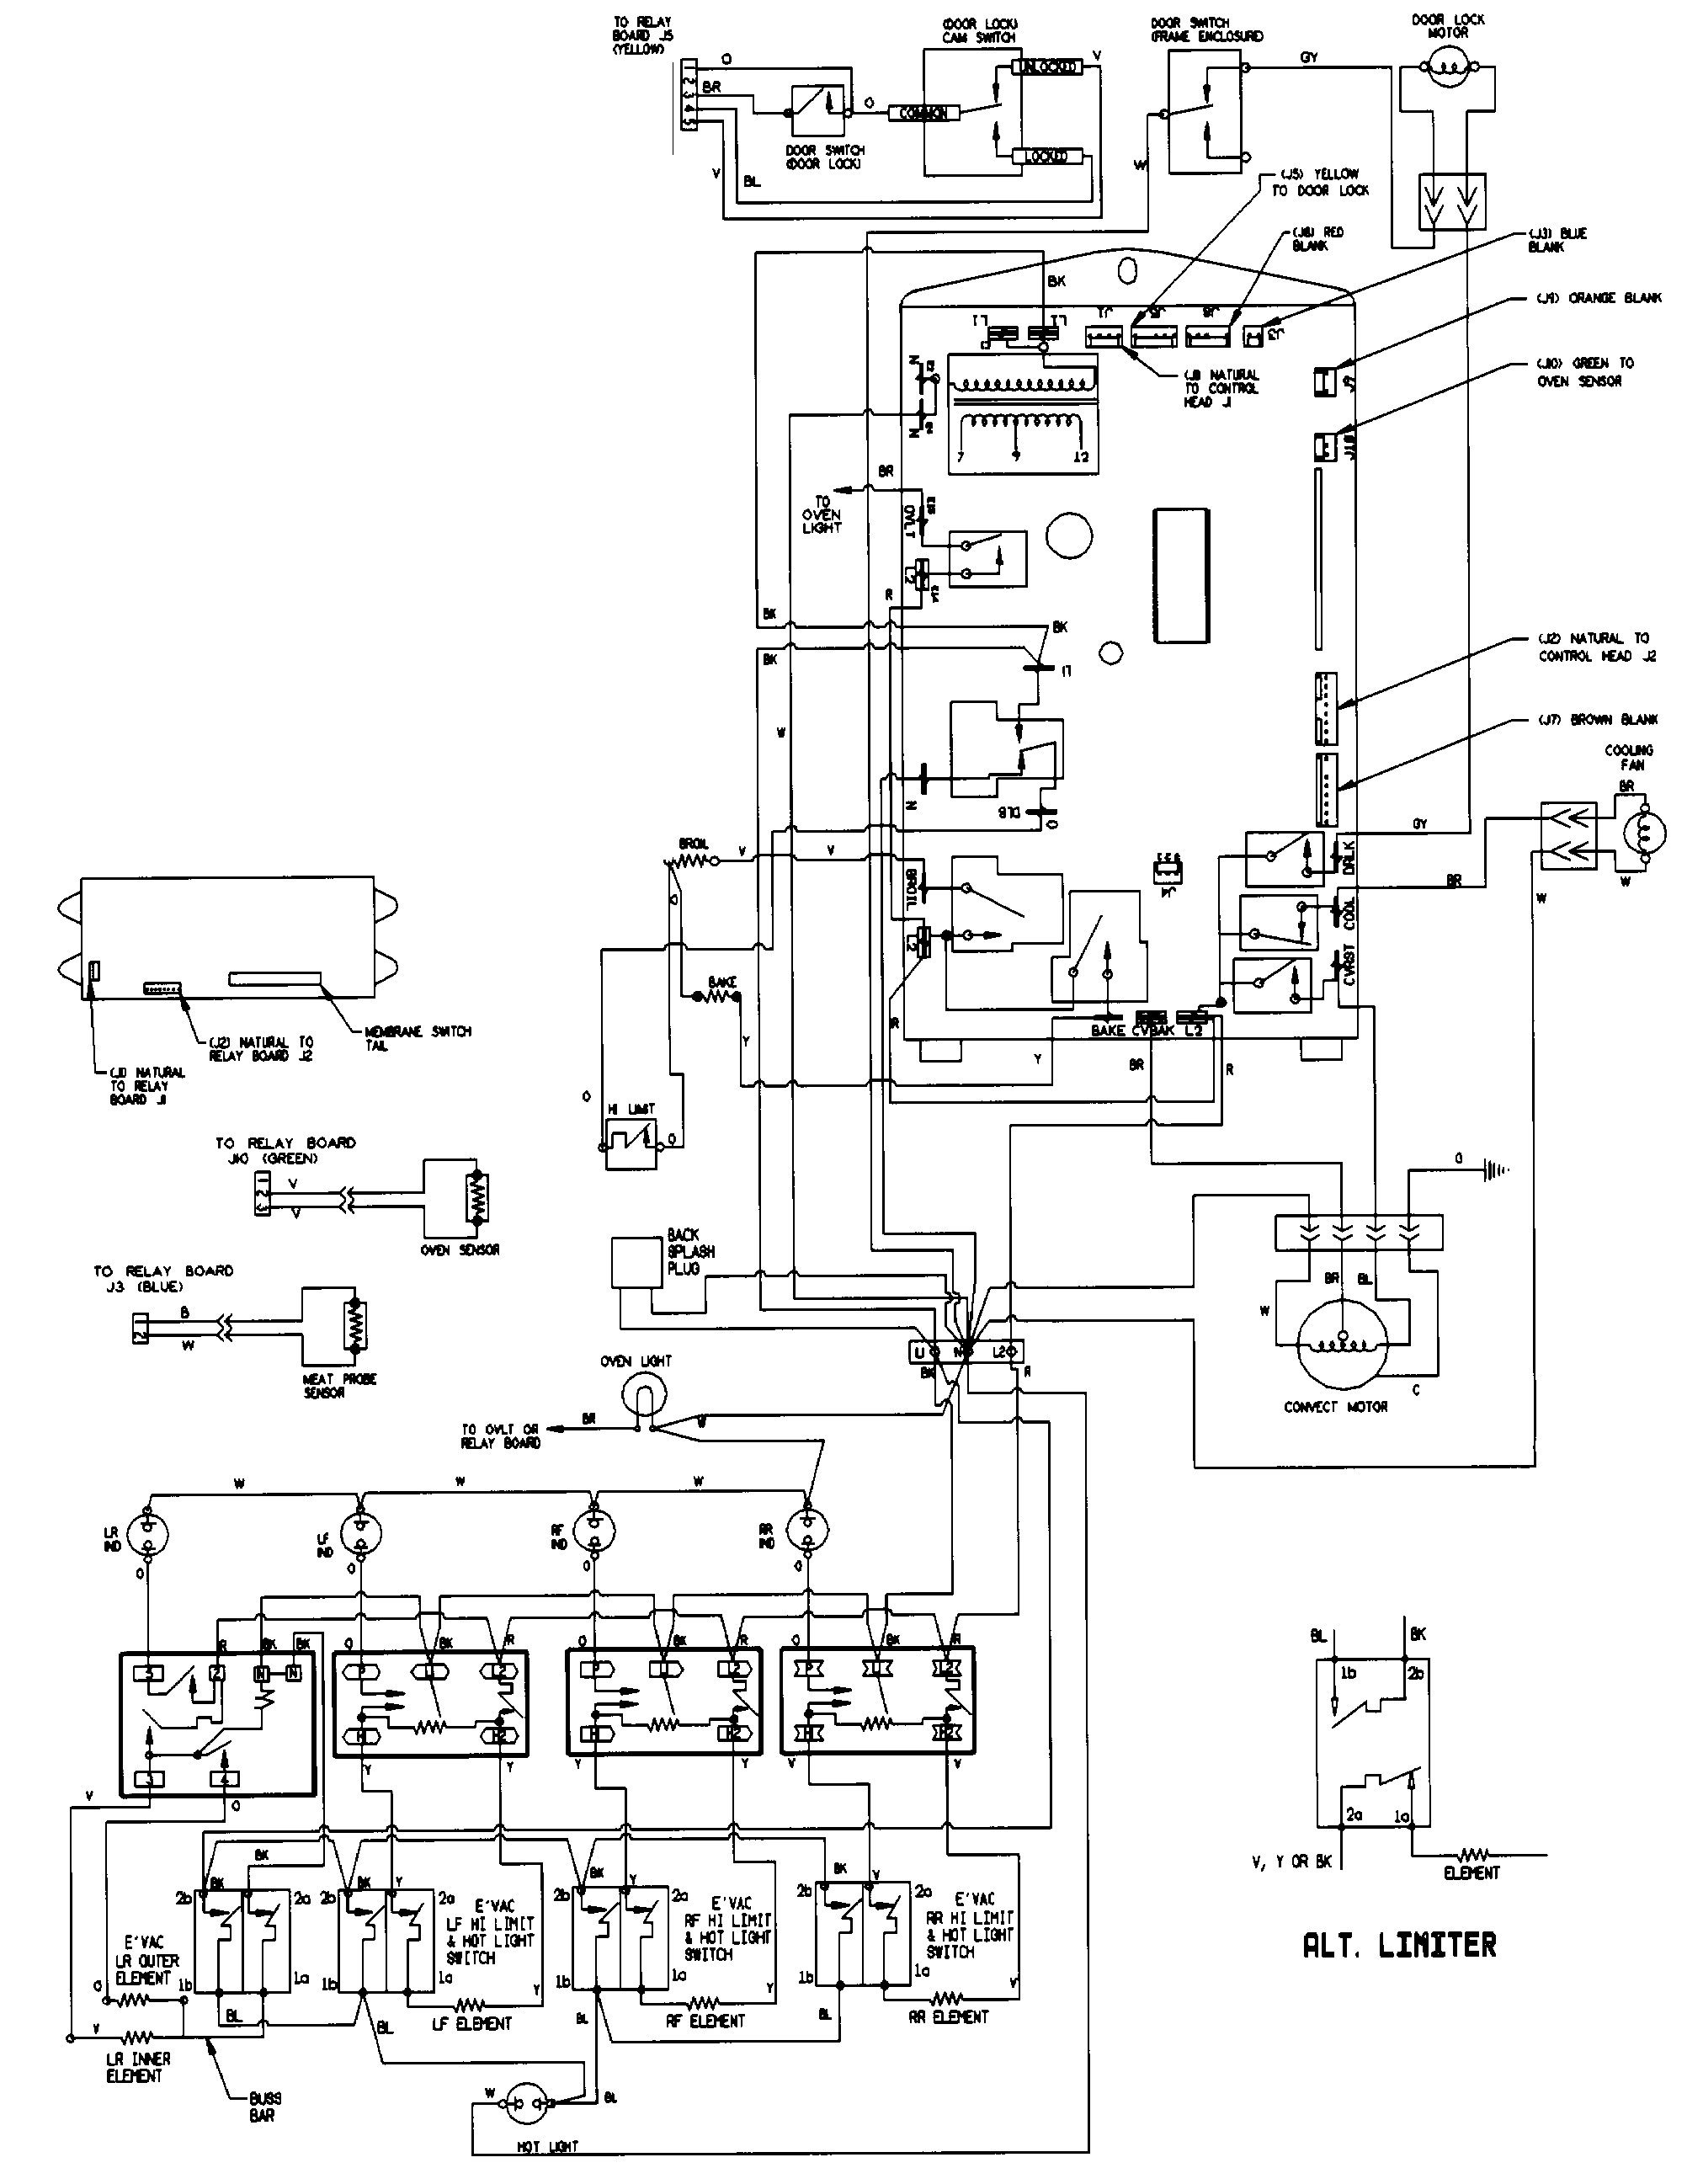 Kenmore Elite Defrost Timer Wiring Diagram on